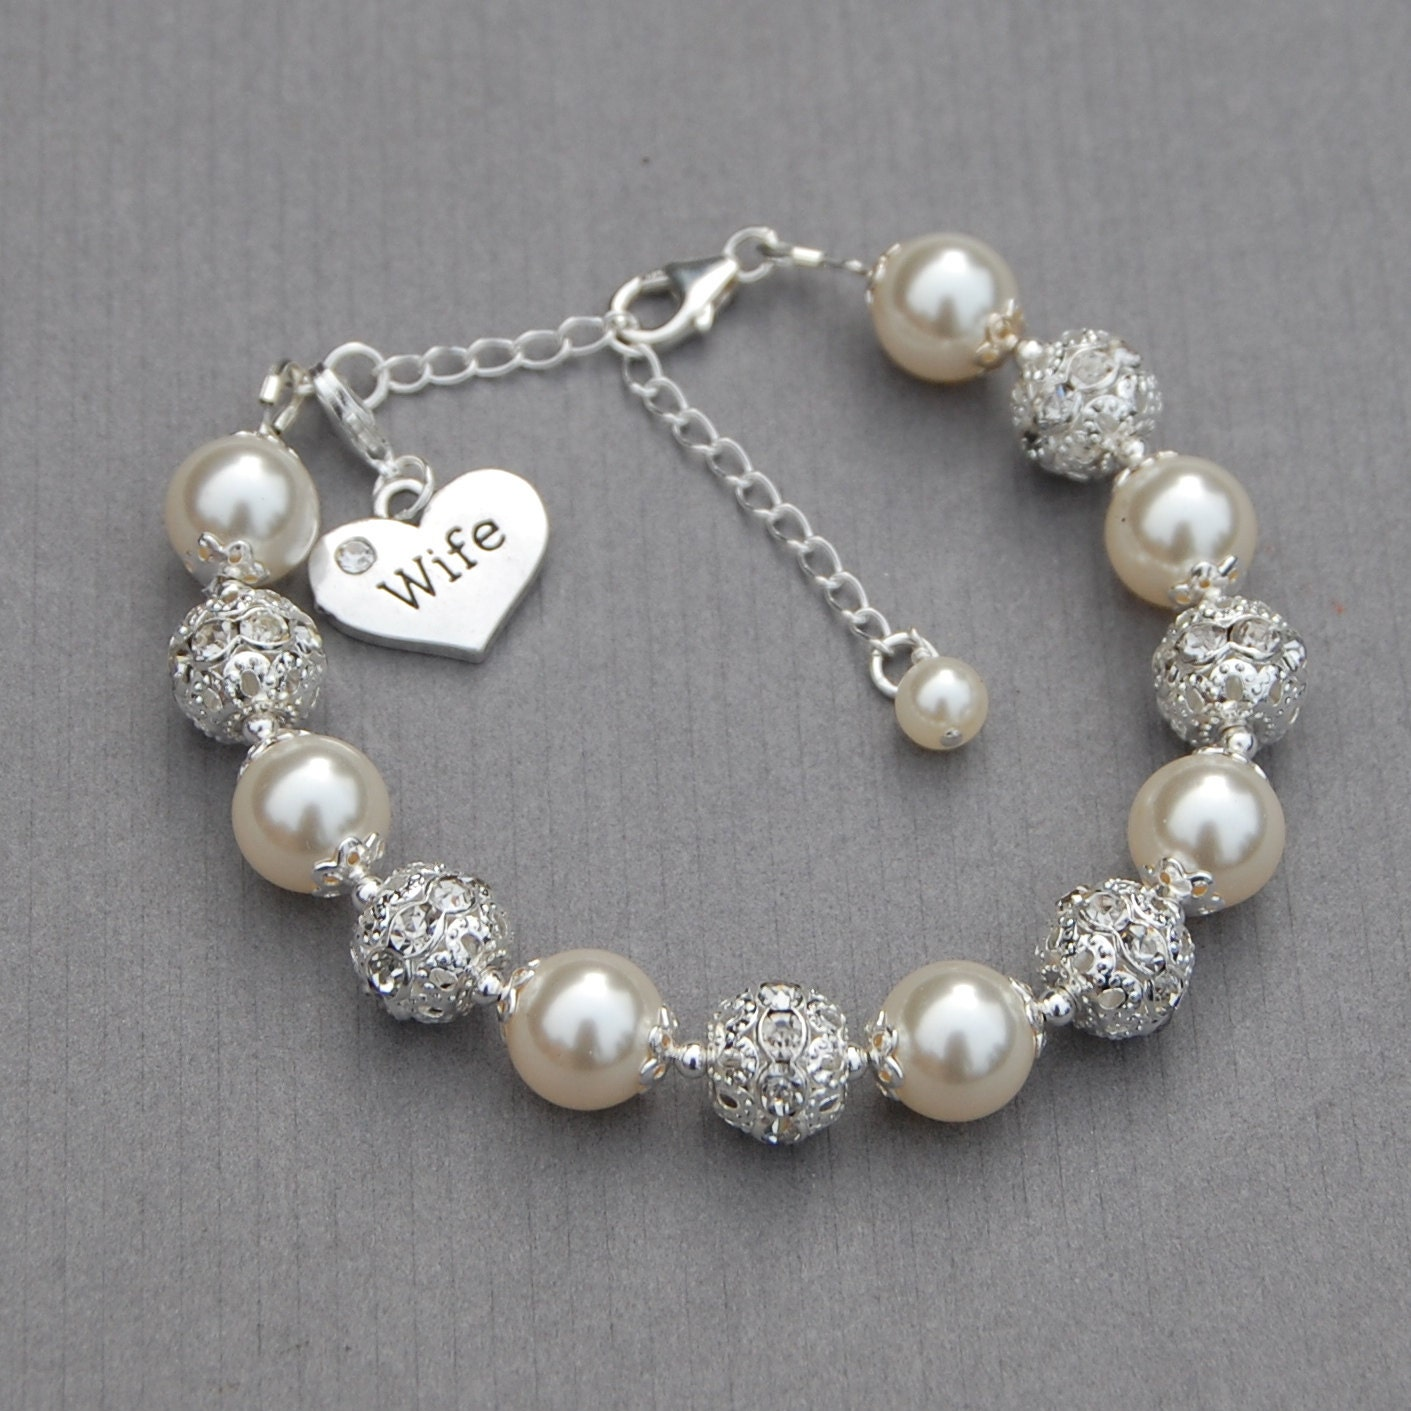 Wife Gifts Christmas: Wife Charm Bracelet Gift For Wife Wife Jewelry Christmas